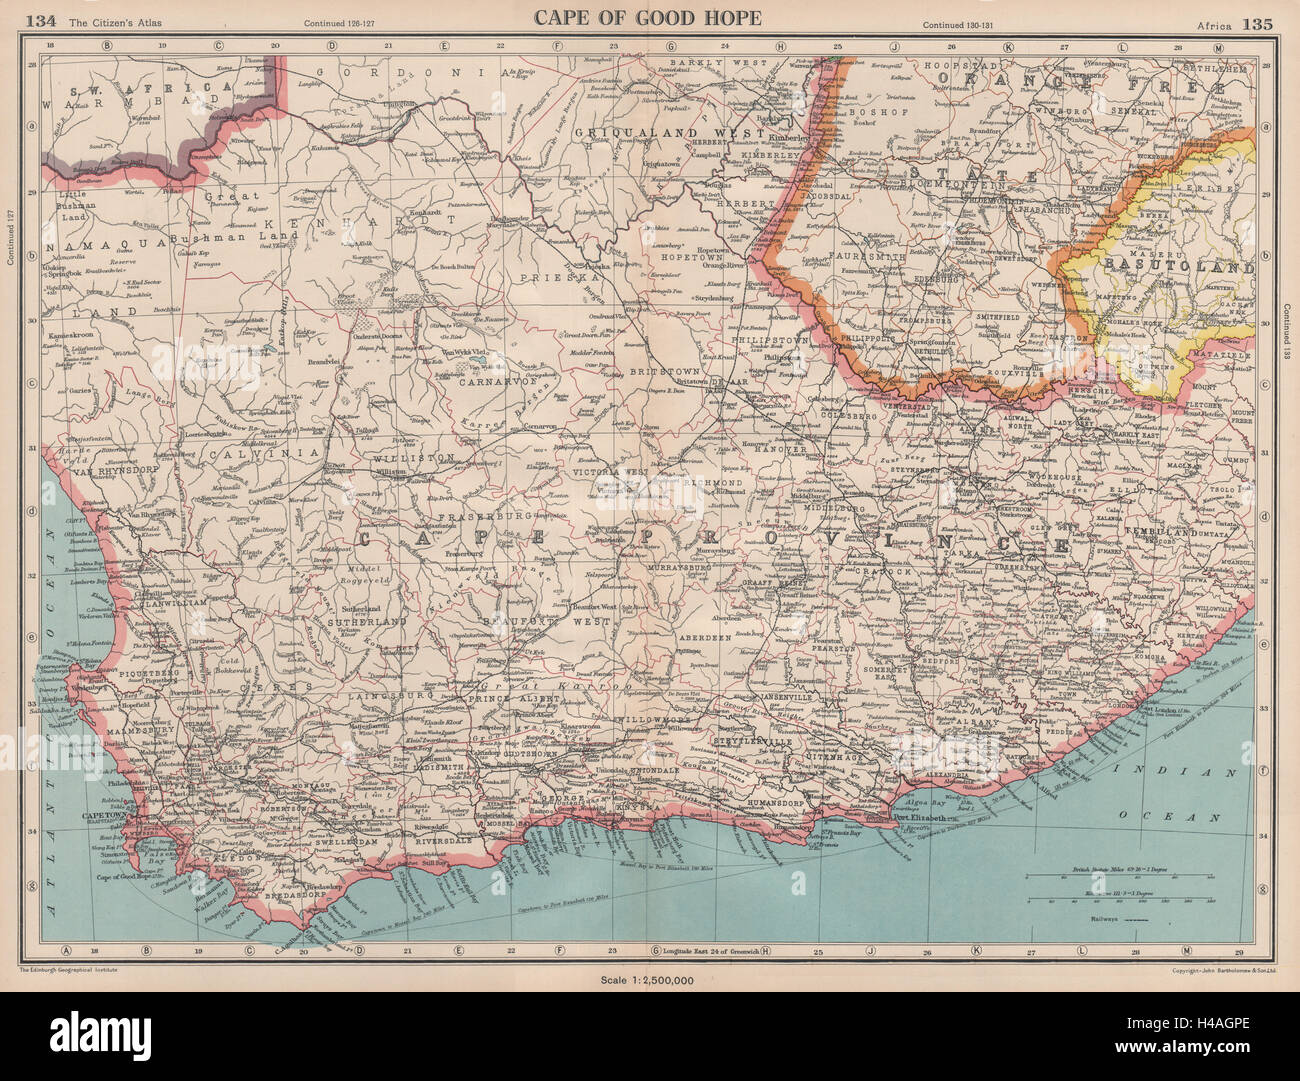 cape province south africa map Cape Of Good Hope Cape Province South Africa Bartholomew 1944 Old Stock Photo Alamy cape province south africa map